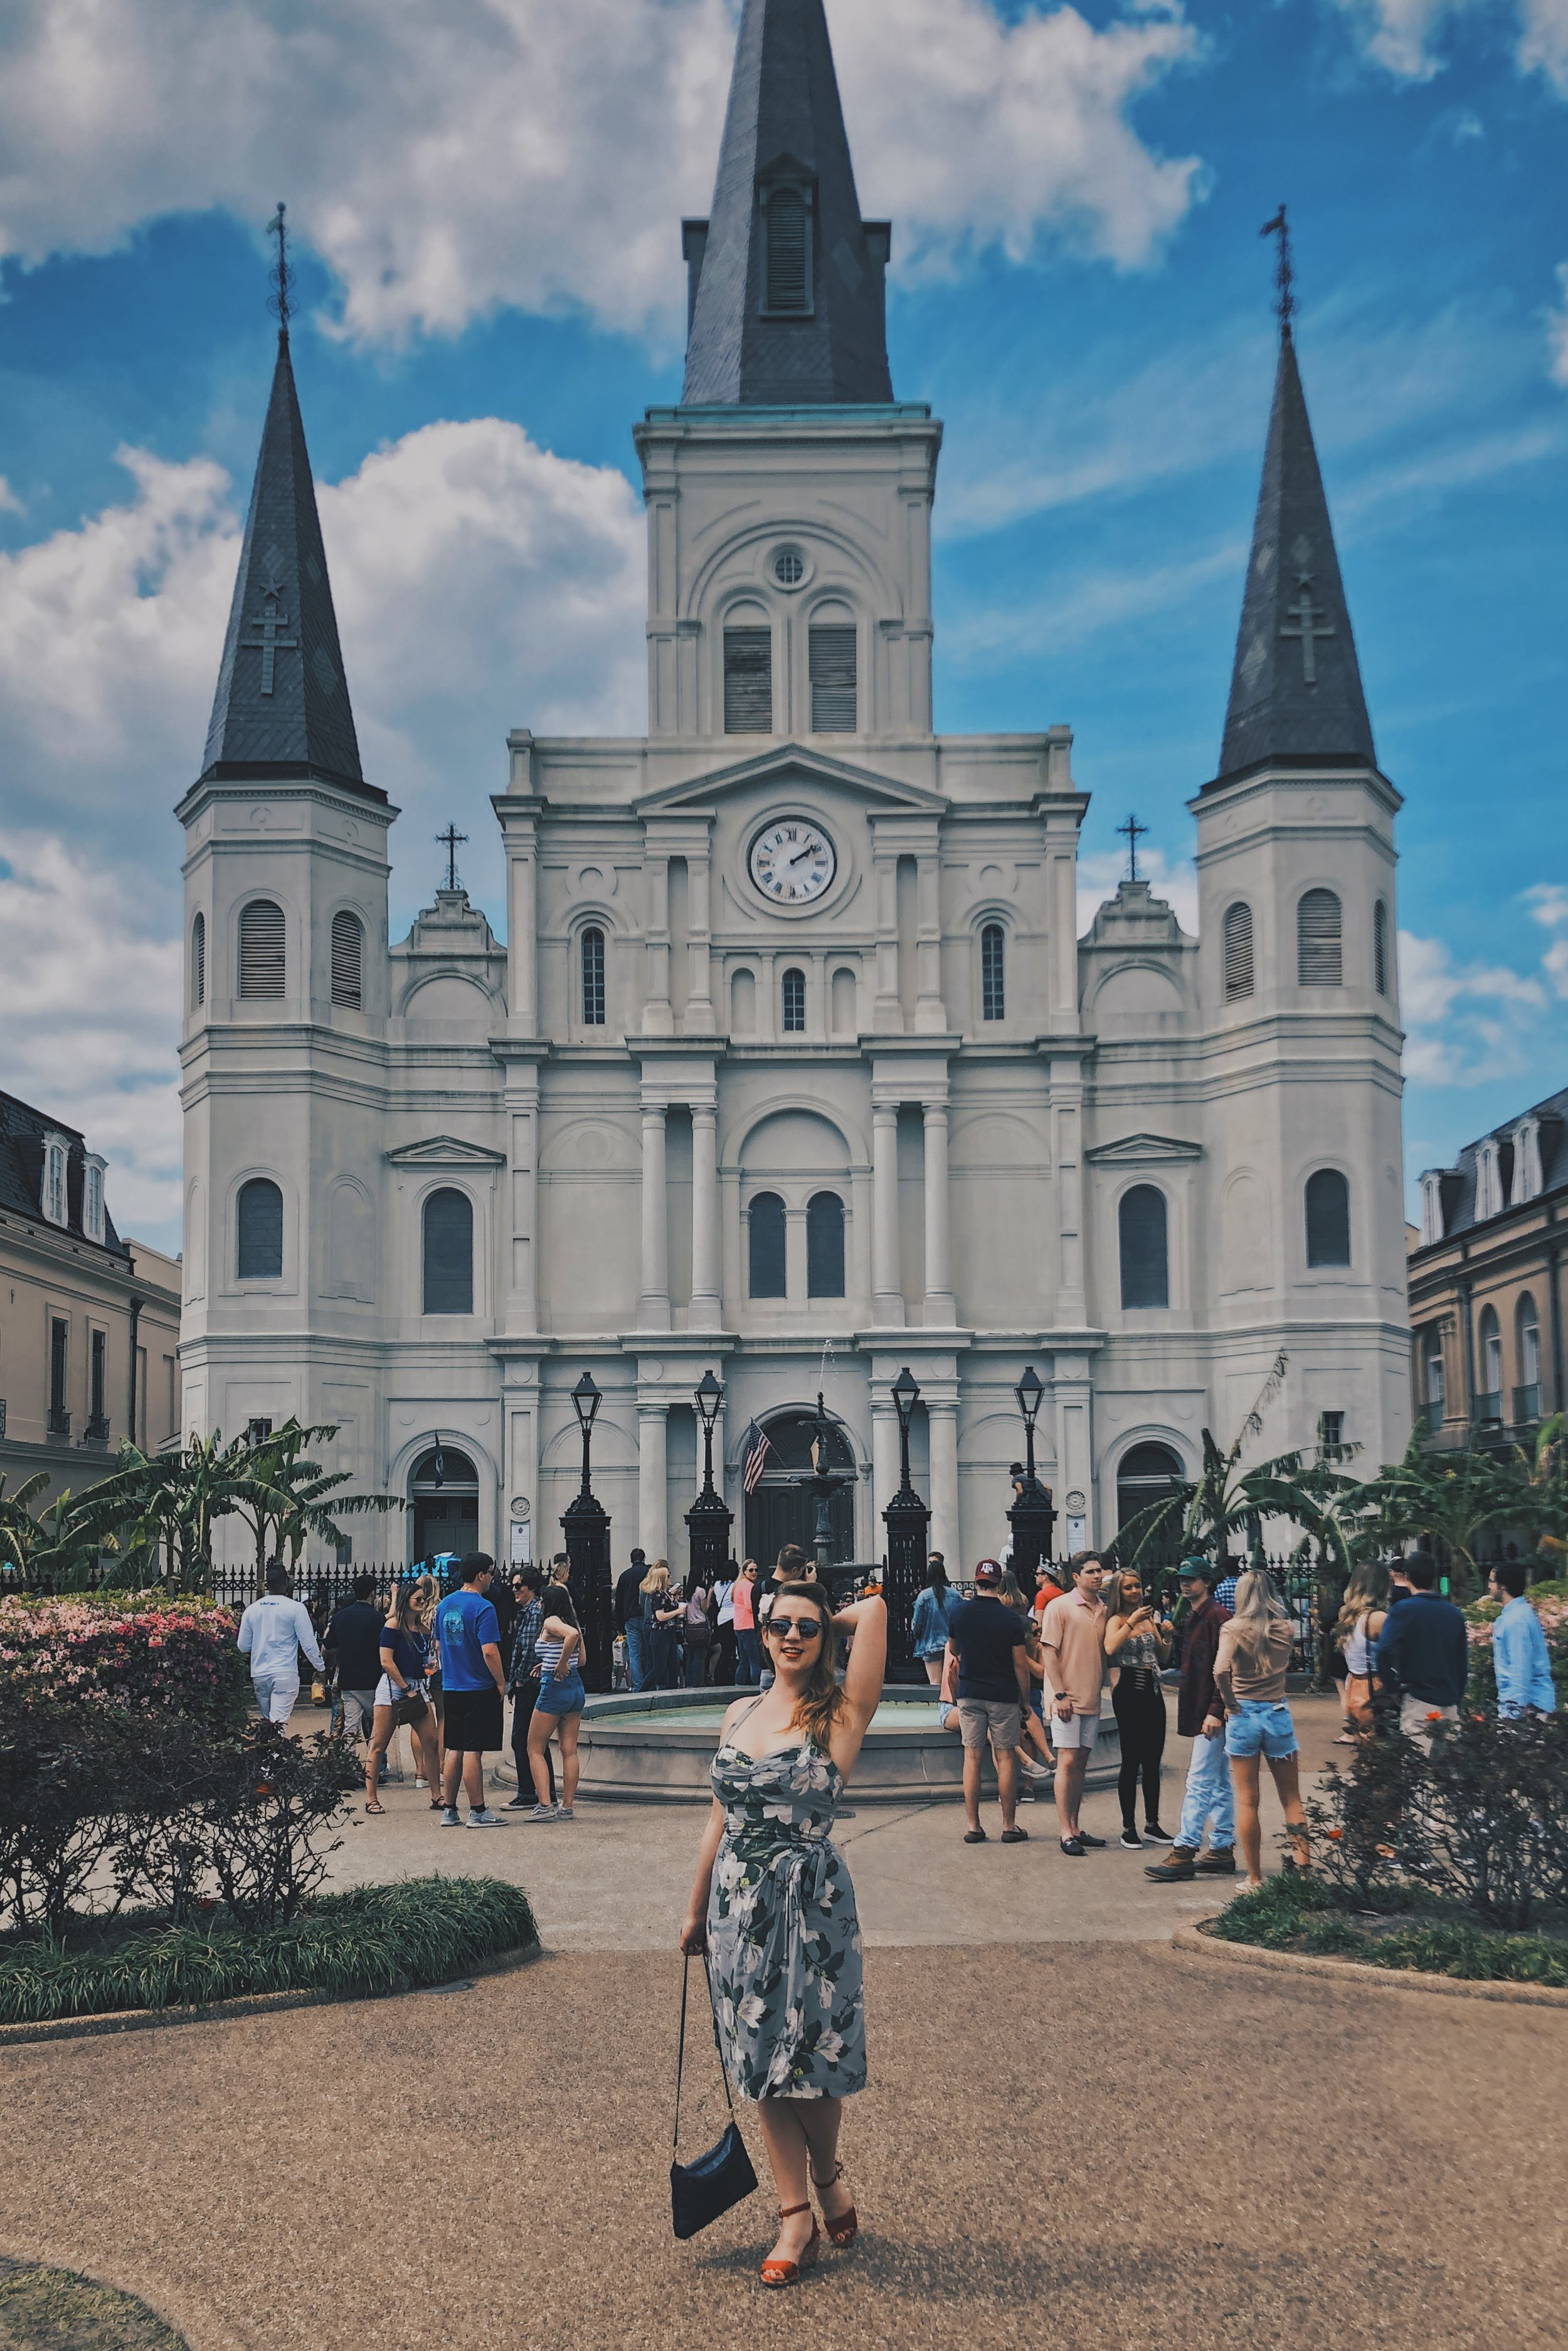 Stroll Through Jackson Square - As if the romance of the French Quarter wasn't enough, taking a stroll through Jackson Square is a great way to top off this old New Orleans experience. A melange of New Orleans vibes, its a perfect blend with the sound of brass bands drifting in the air mixed with the Parisian aesthetic of the 17th-century Place des Vosges.